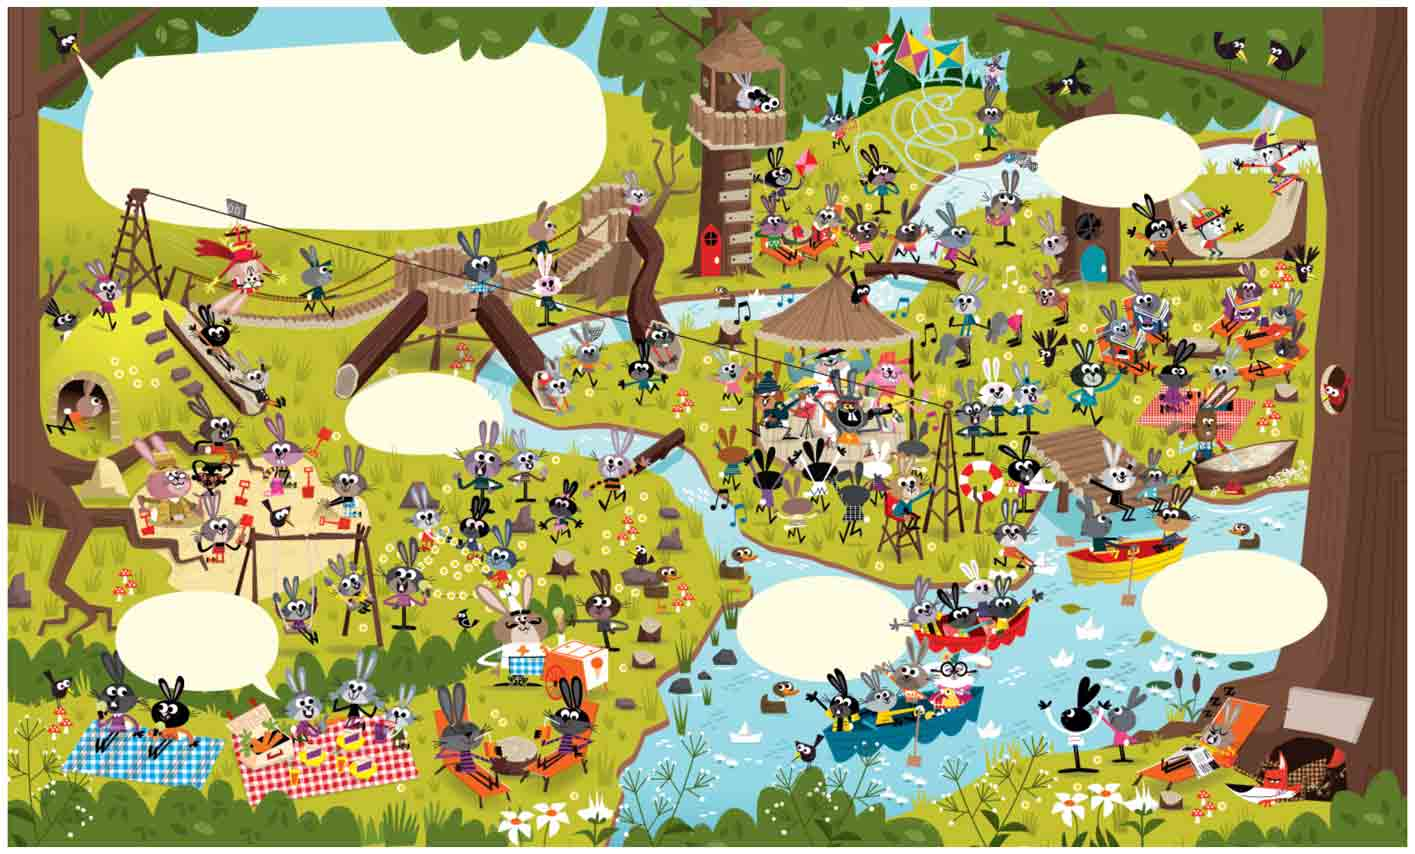 Summer-Camp-Zip line-boating-picnic-scenes-of-animated-Rabbits-inWheres-Waldo-find-it-scene